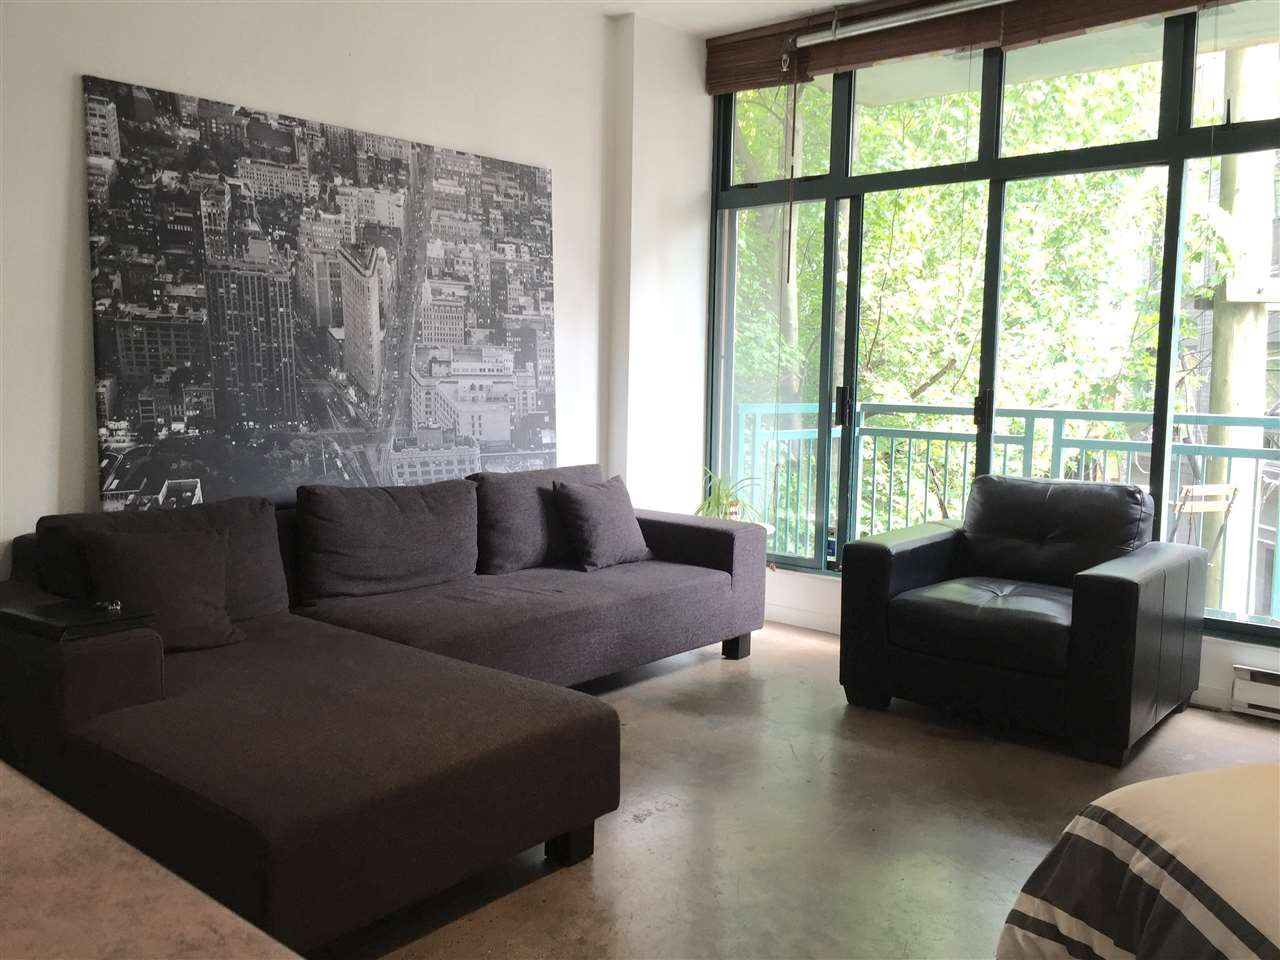 Photo 10: Photos: 219 22 E CORDOVA Street in Vancouver: Downtown VE Condo for sale (Vancouver East)  : MLS®# R2091269